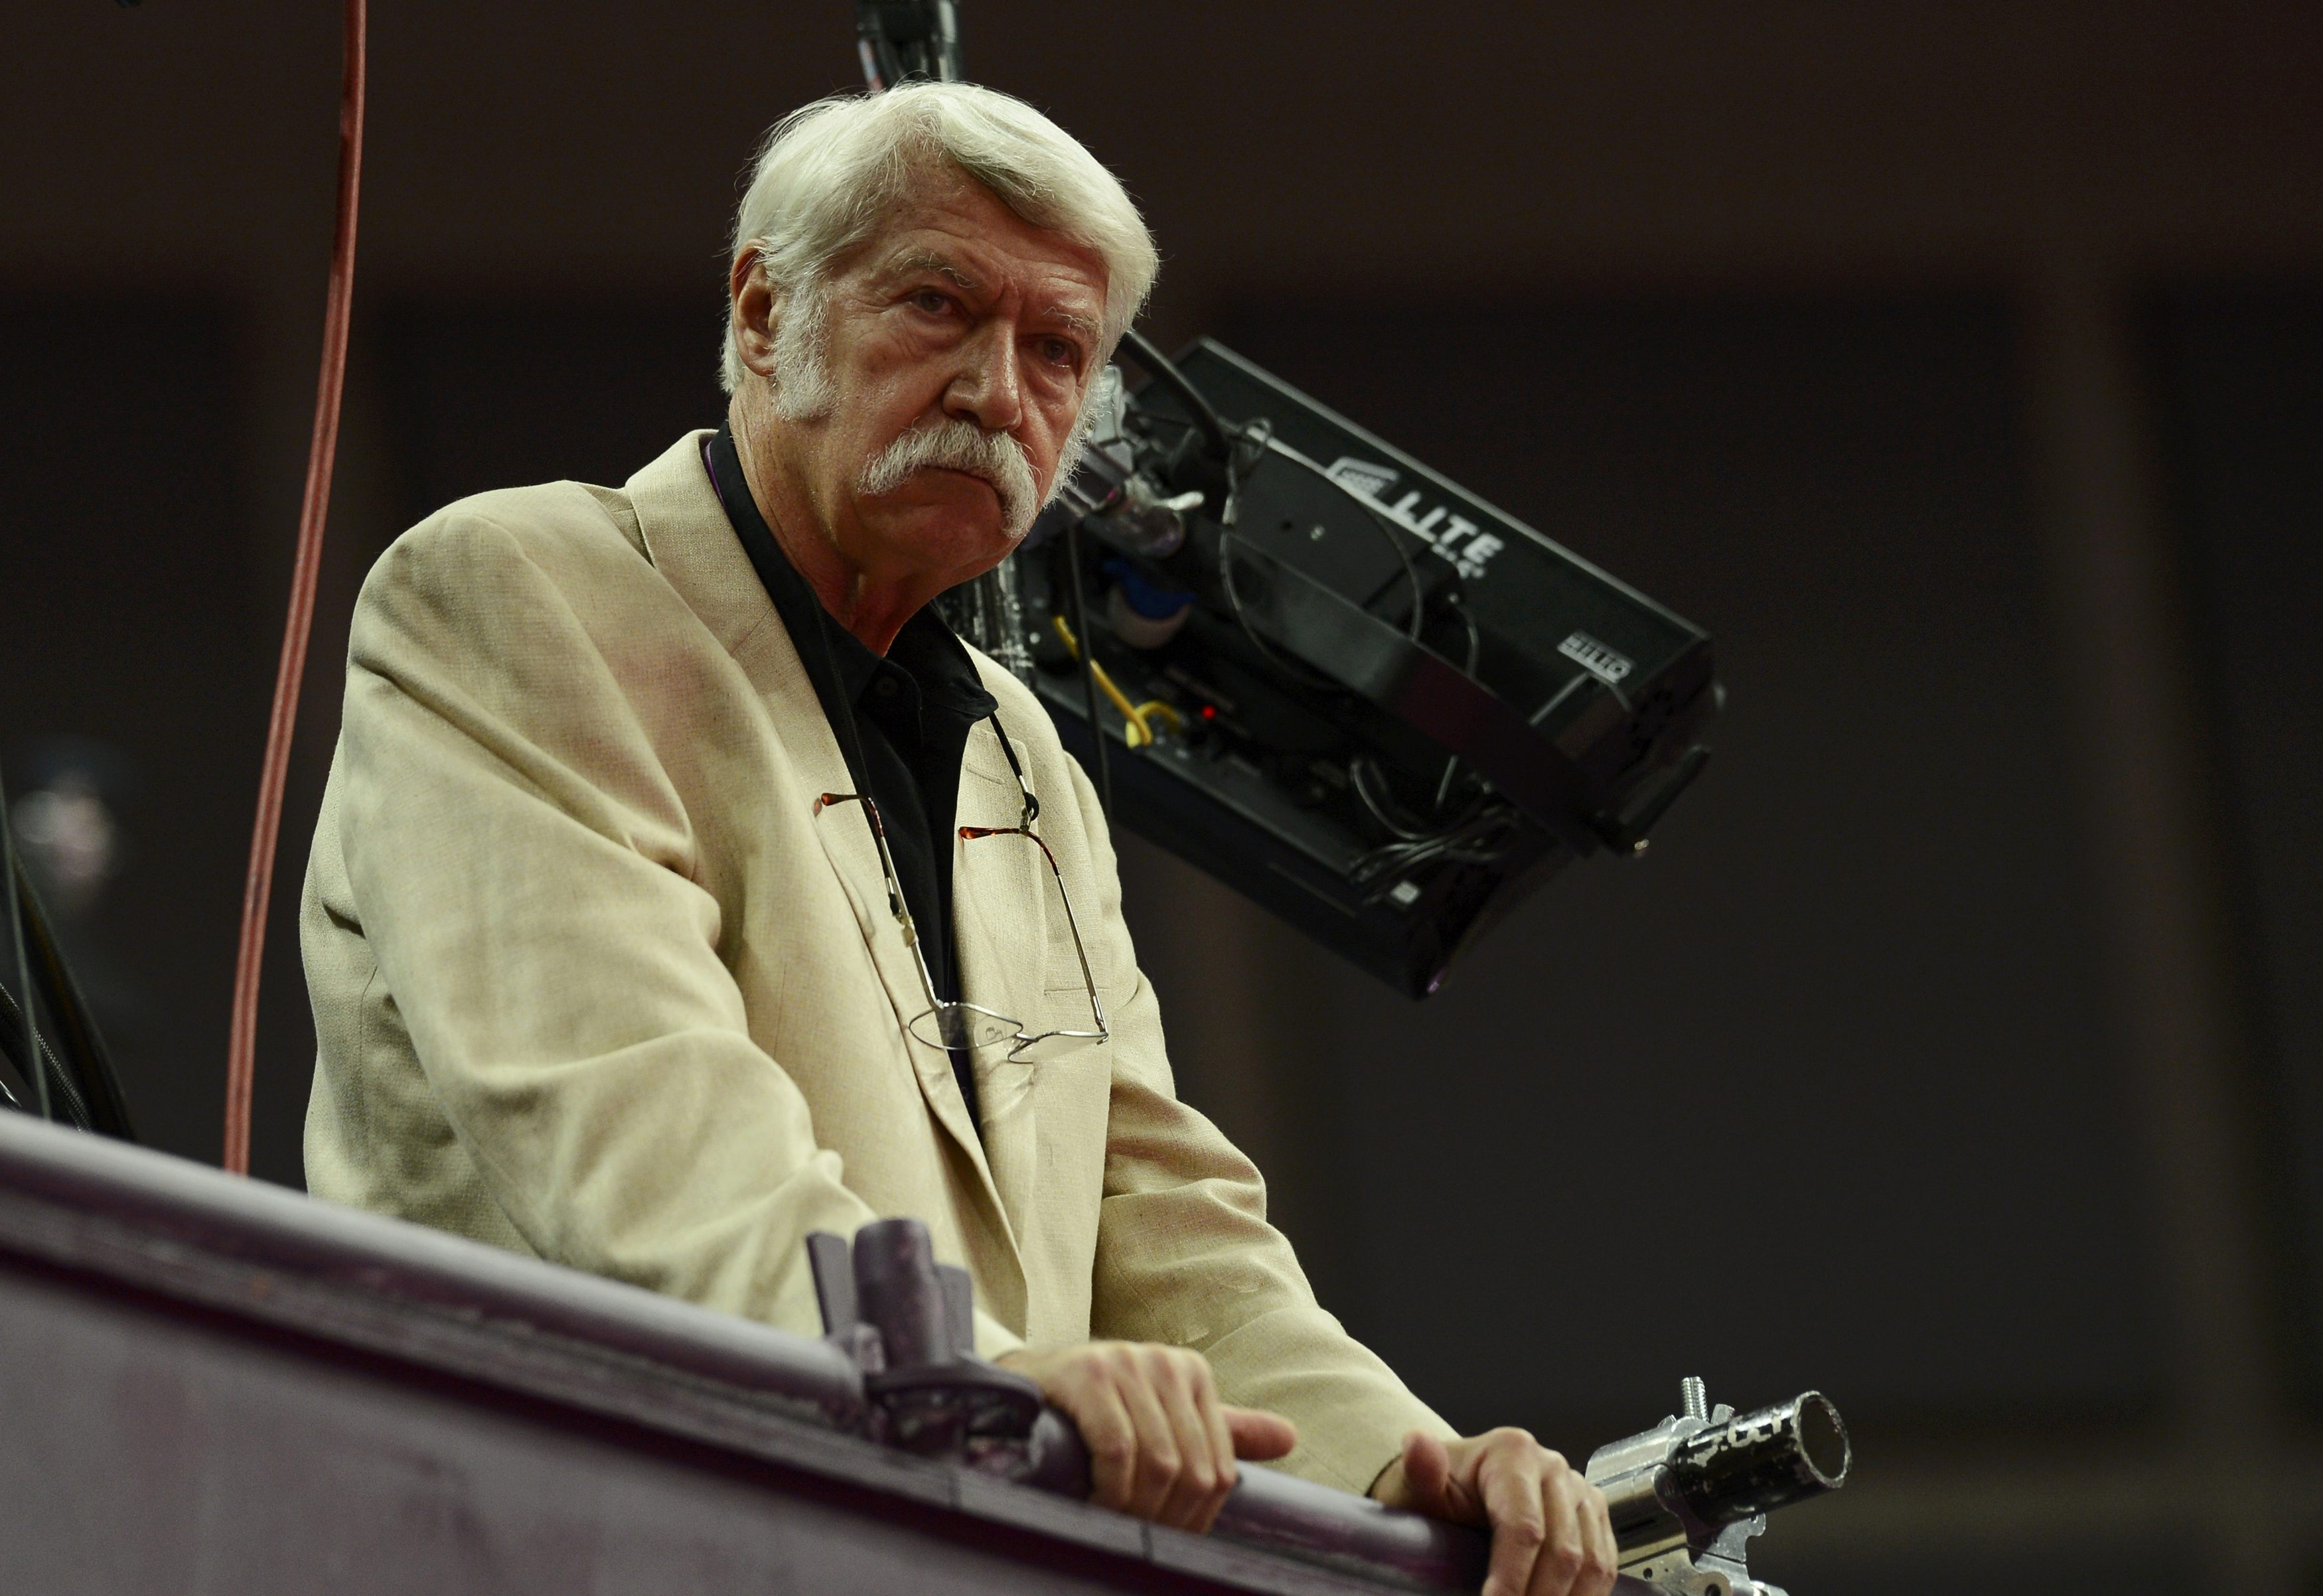 Bela Karolyi watches the women's gymnastics qualification at the North Greenwich Arena. (Reuters)